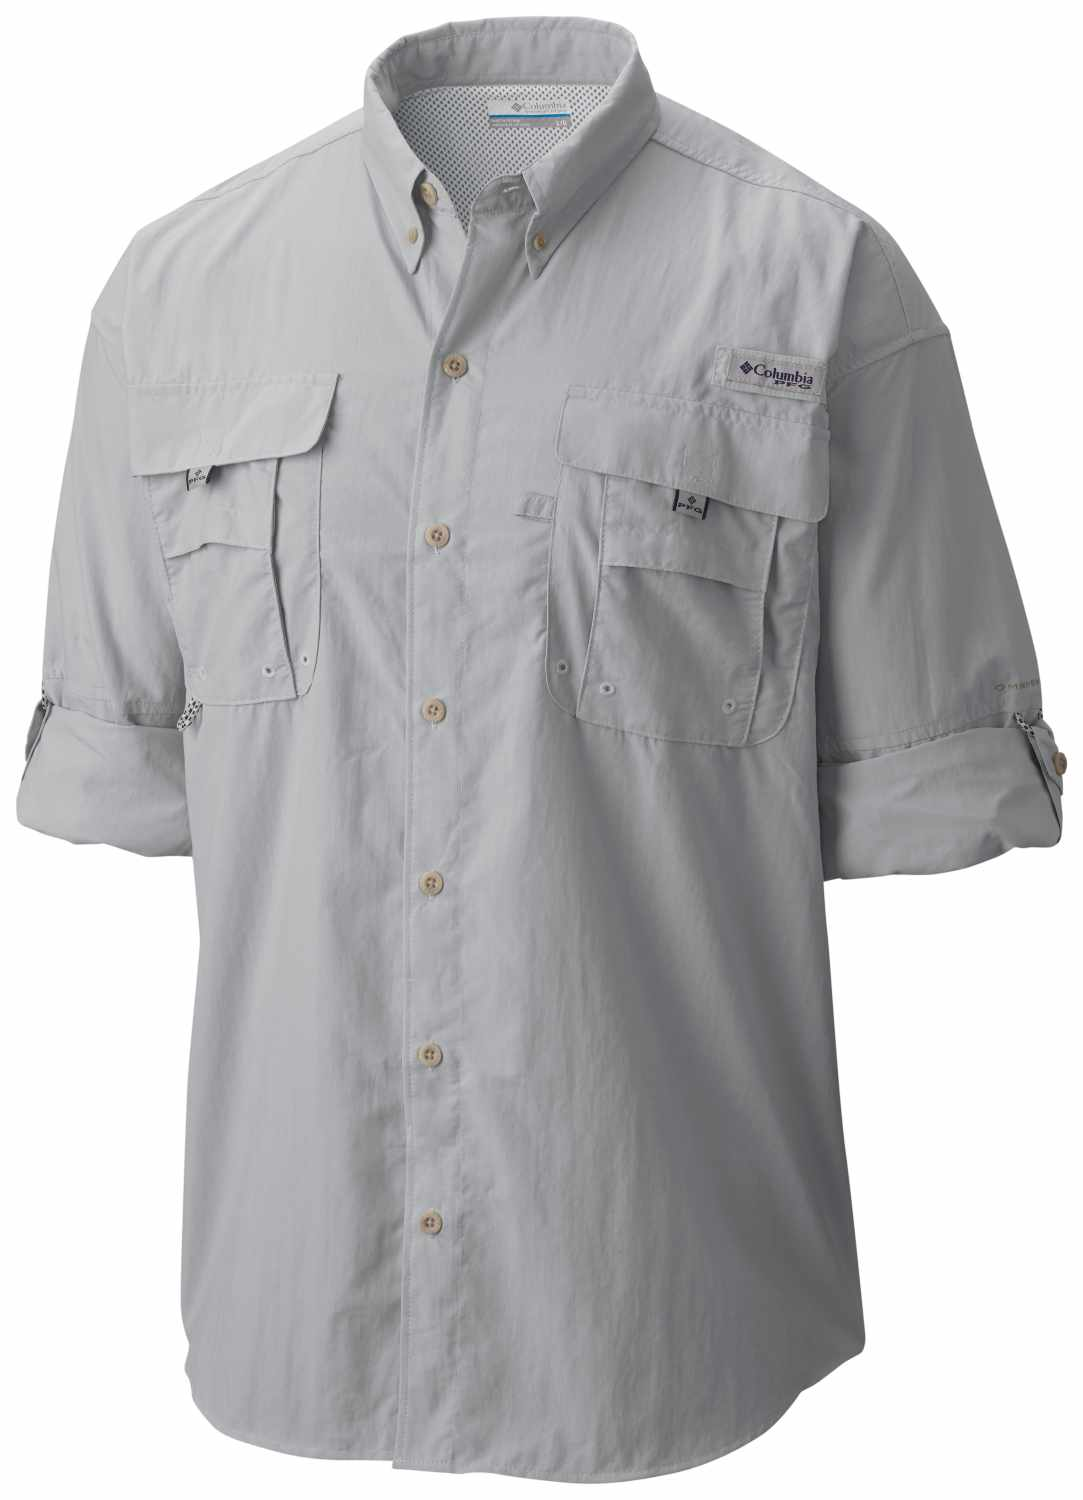 Columbia-Bahama II Long Sleeve Shirt - Men's